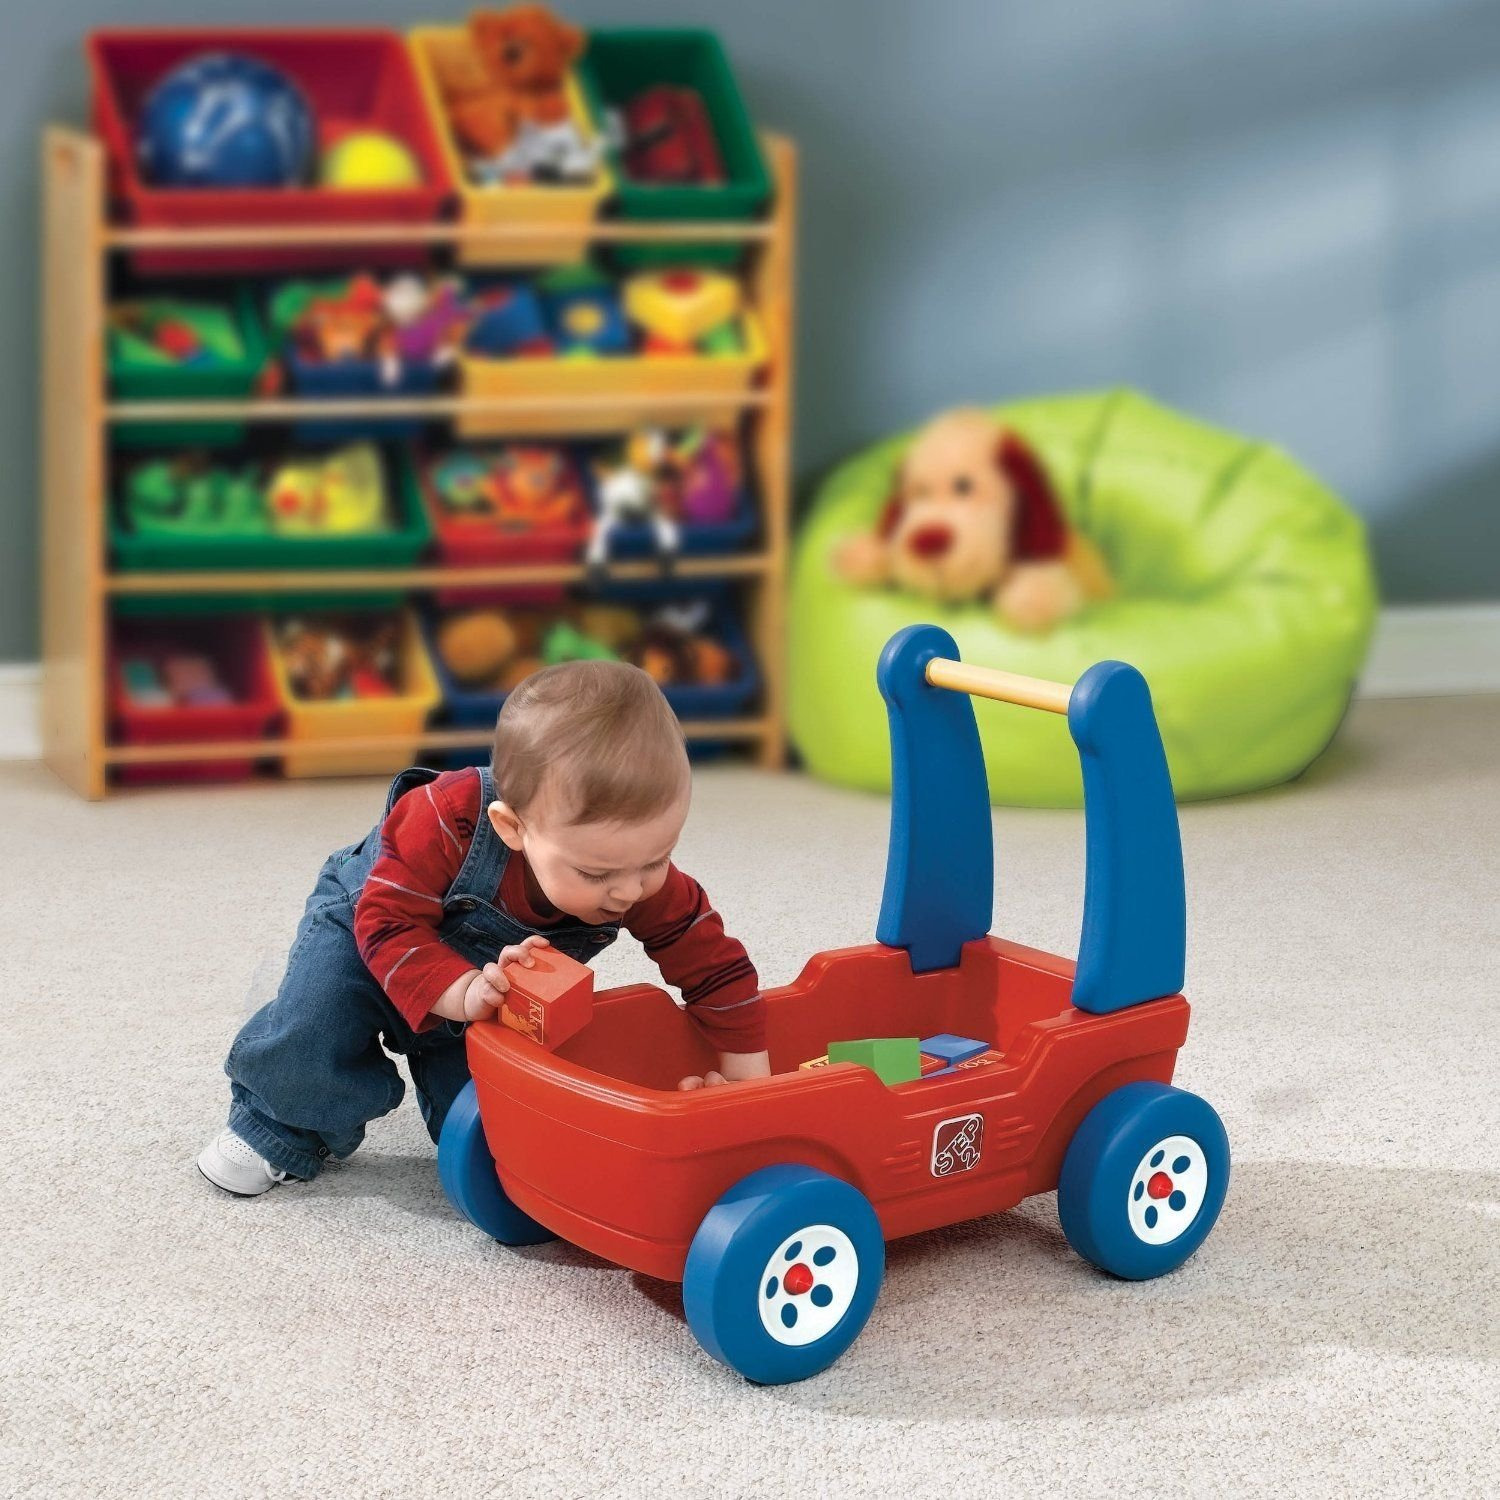 10 Unique Gift Ideas For One Year Old Boy best rated budget friendly gift ideas for one year old boys first 7